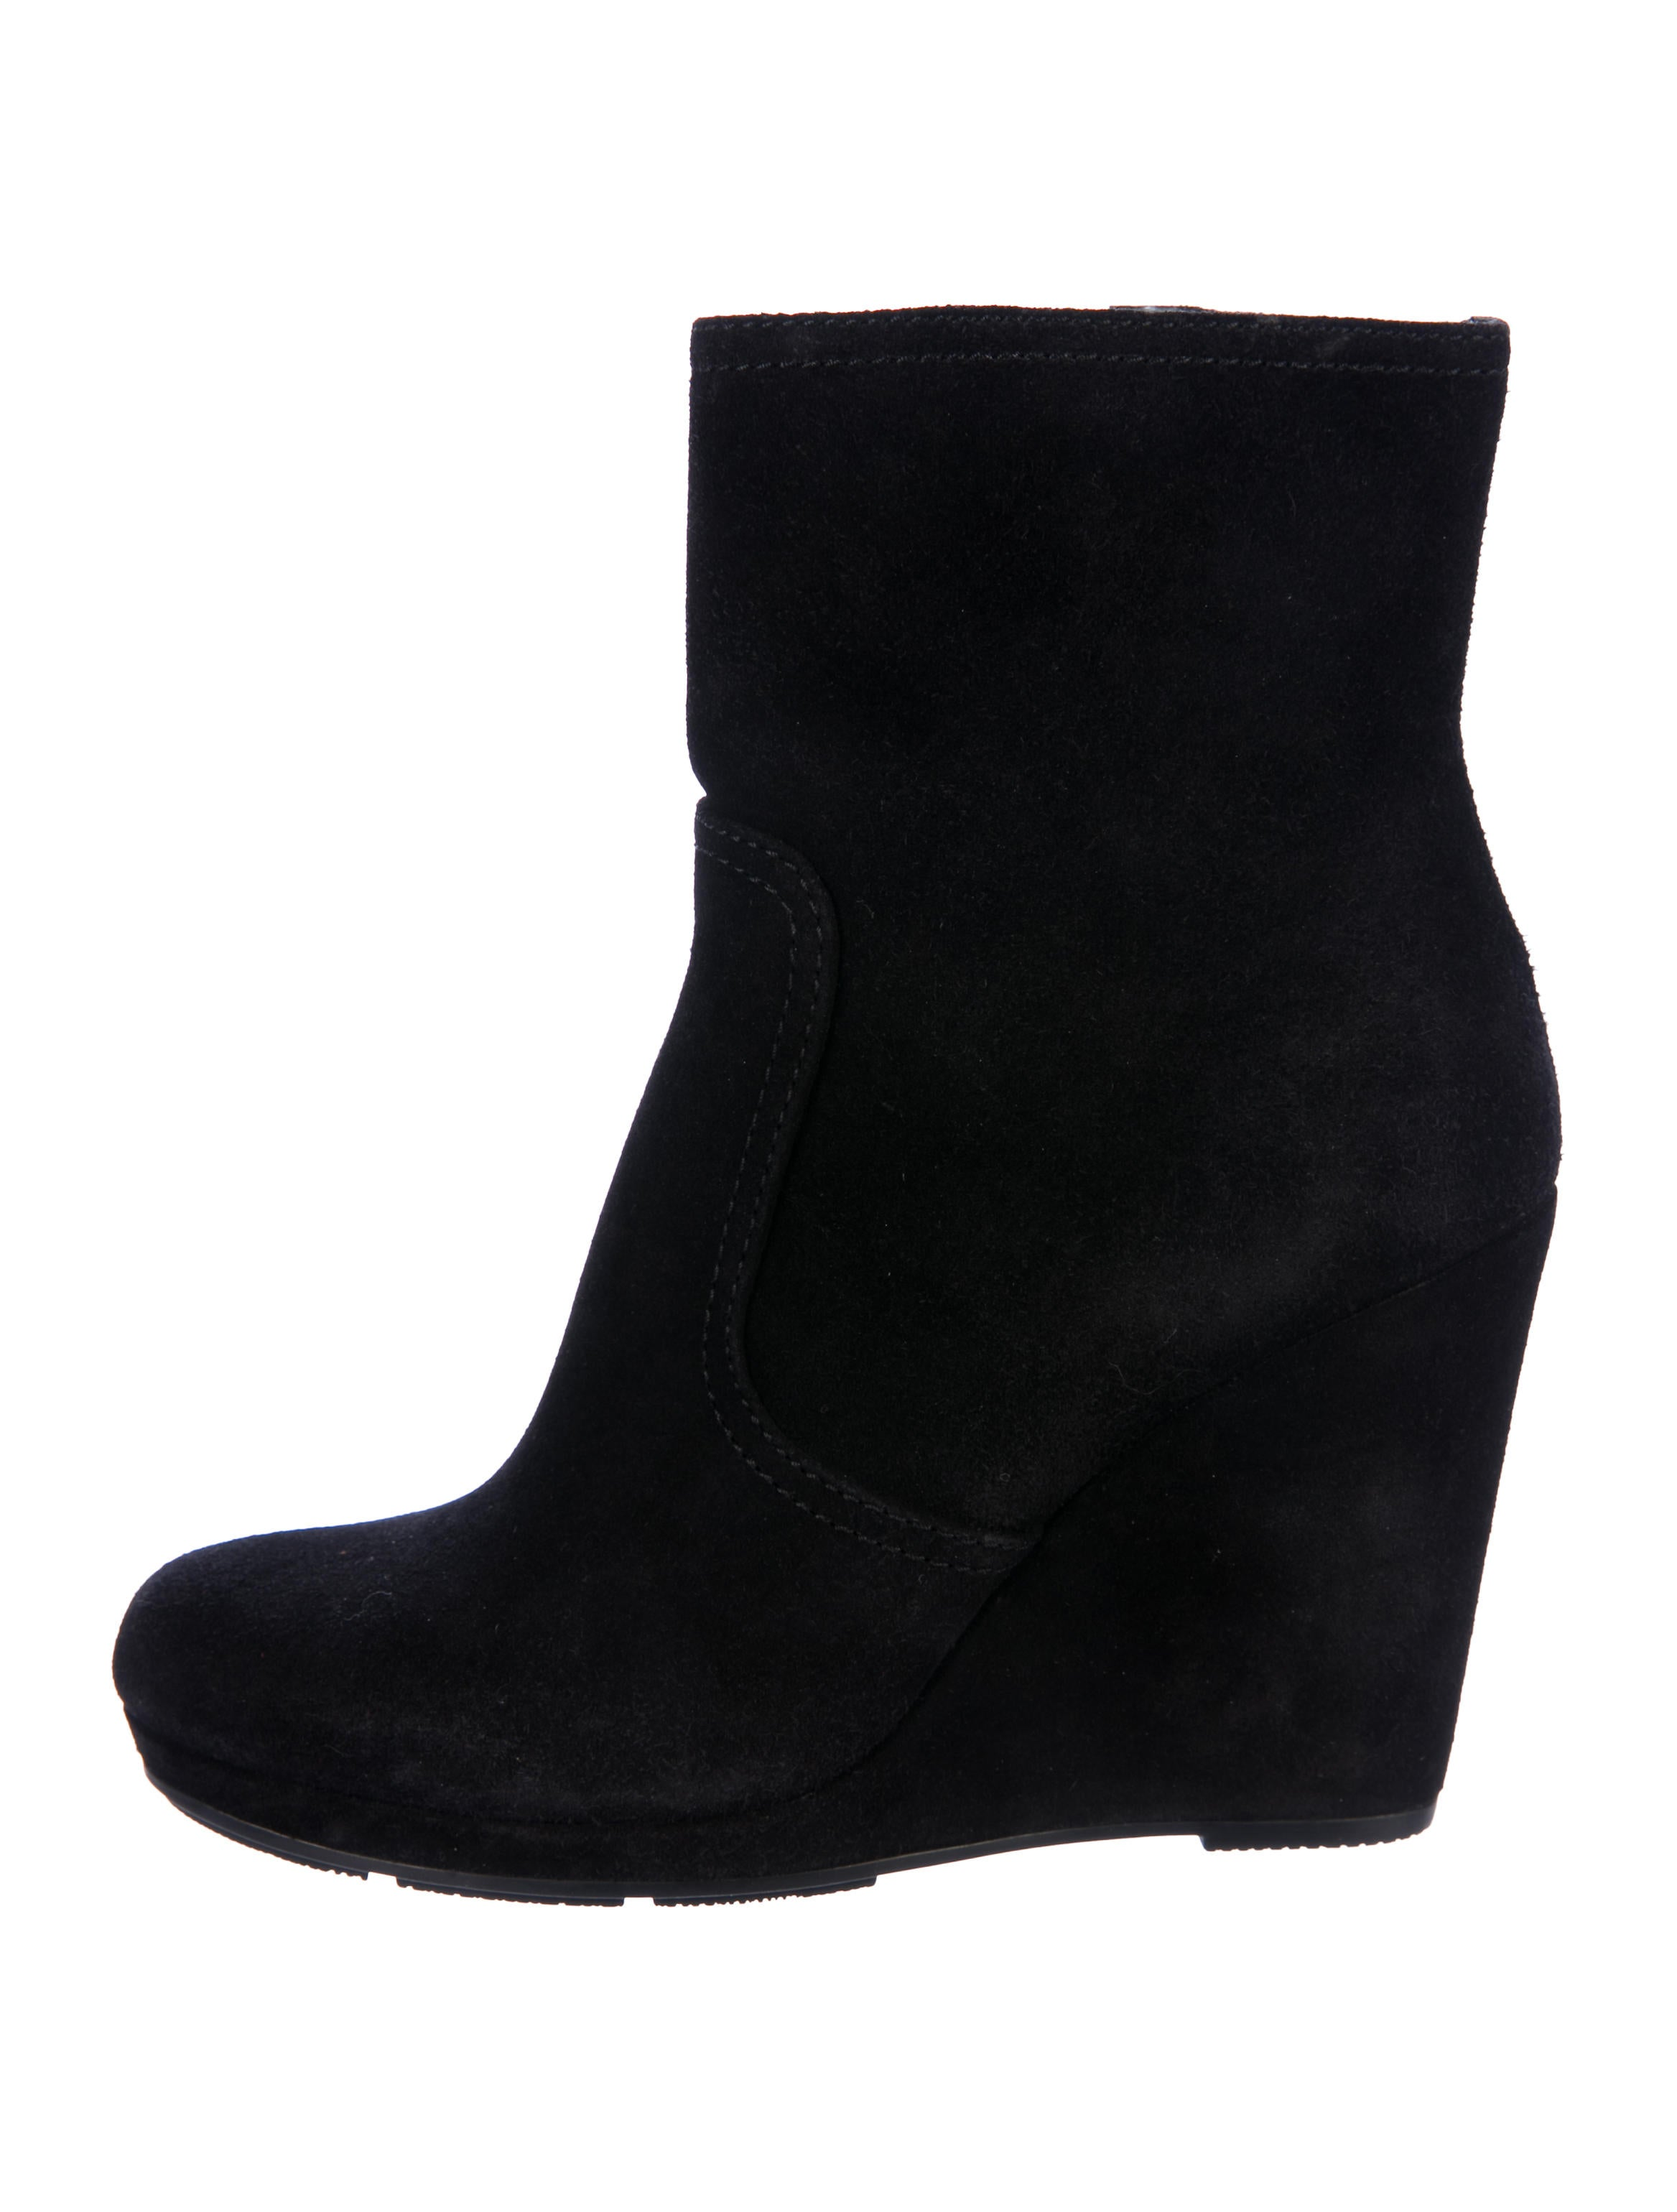 Prada Sport Suede Wedge Ankle Boots quality free shipping outlet outlet genuine PkjdFunf